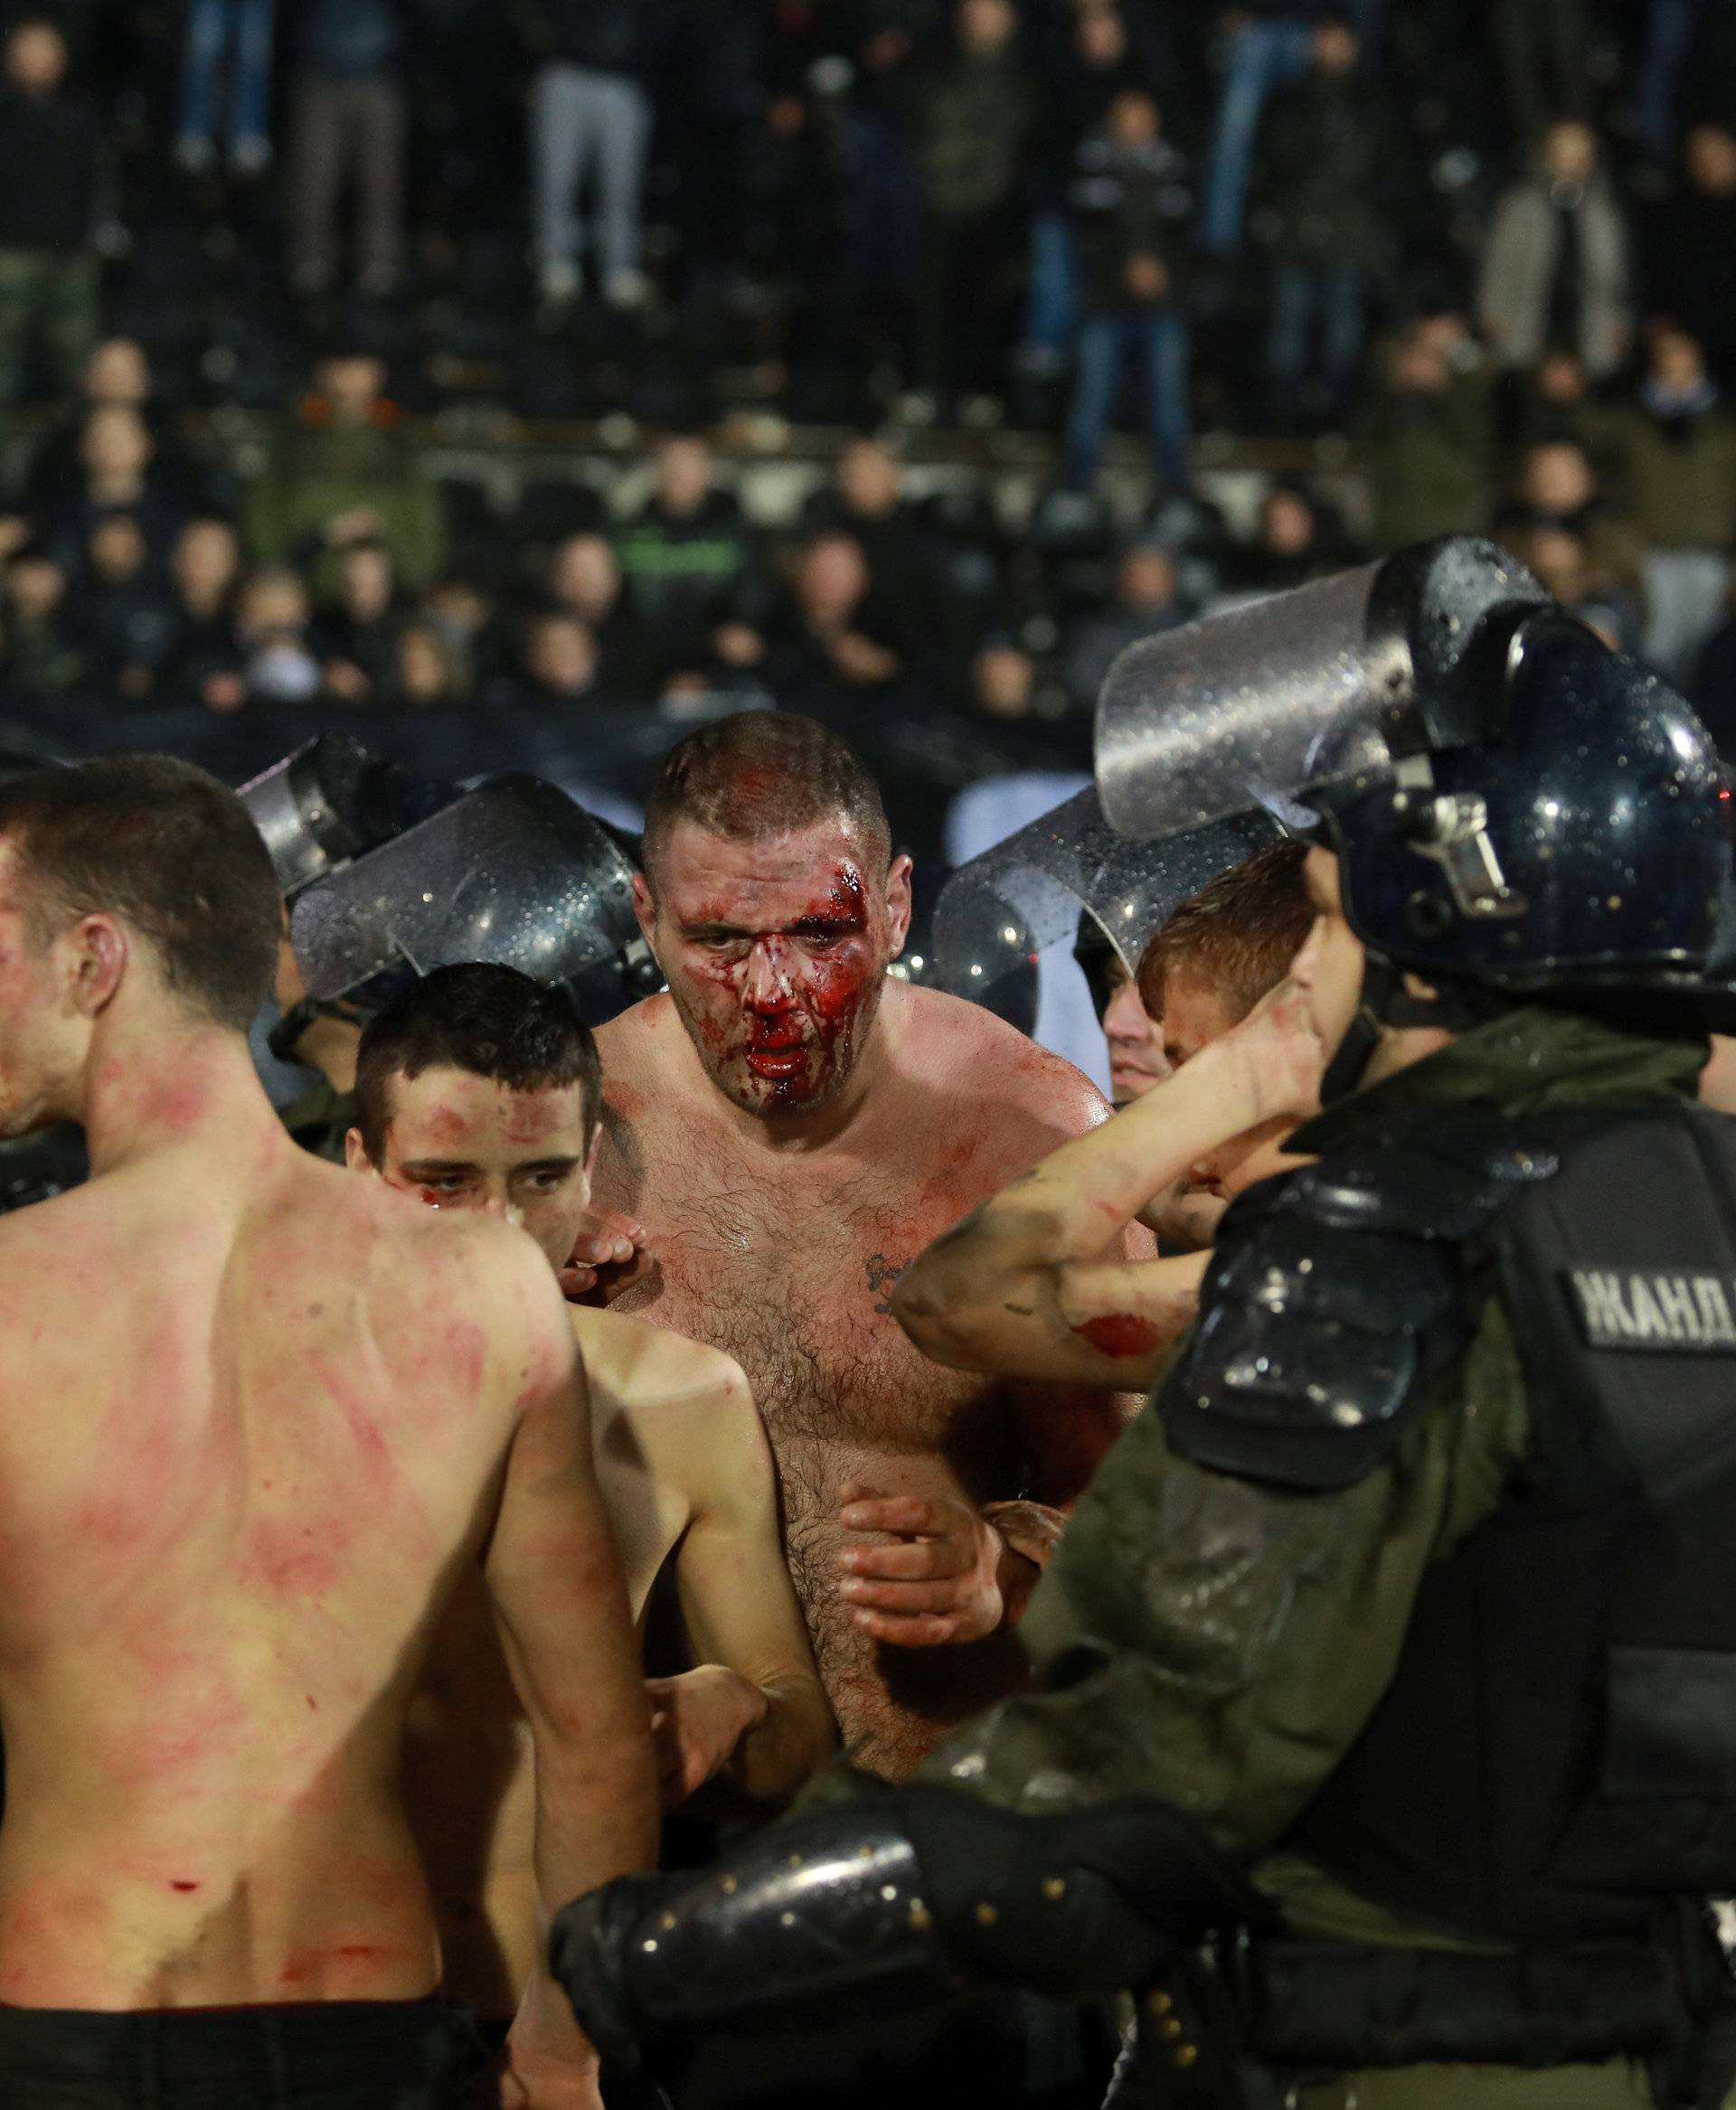 Police escort the soccer fans injured during the fights at a match between Red Star and Partizan in Belgrade